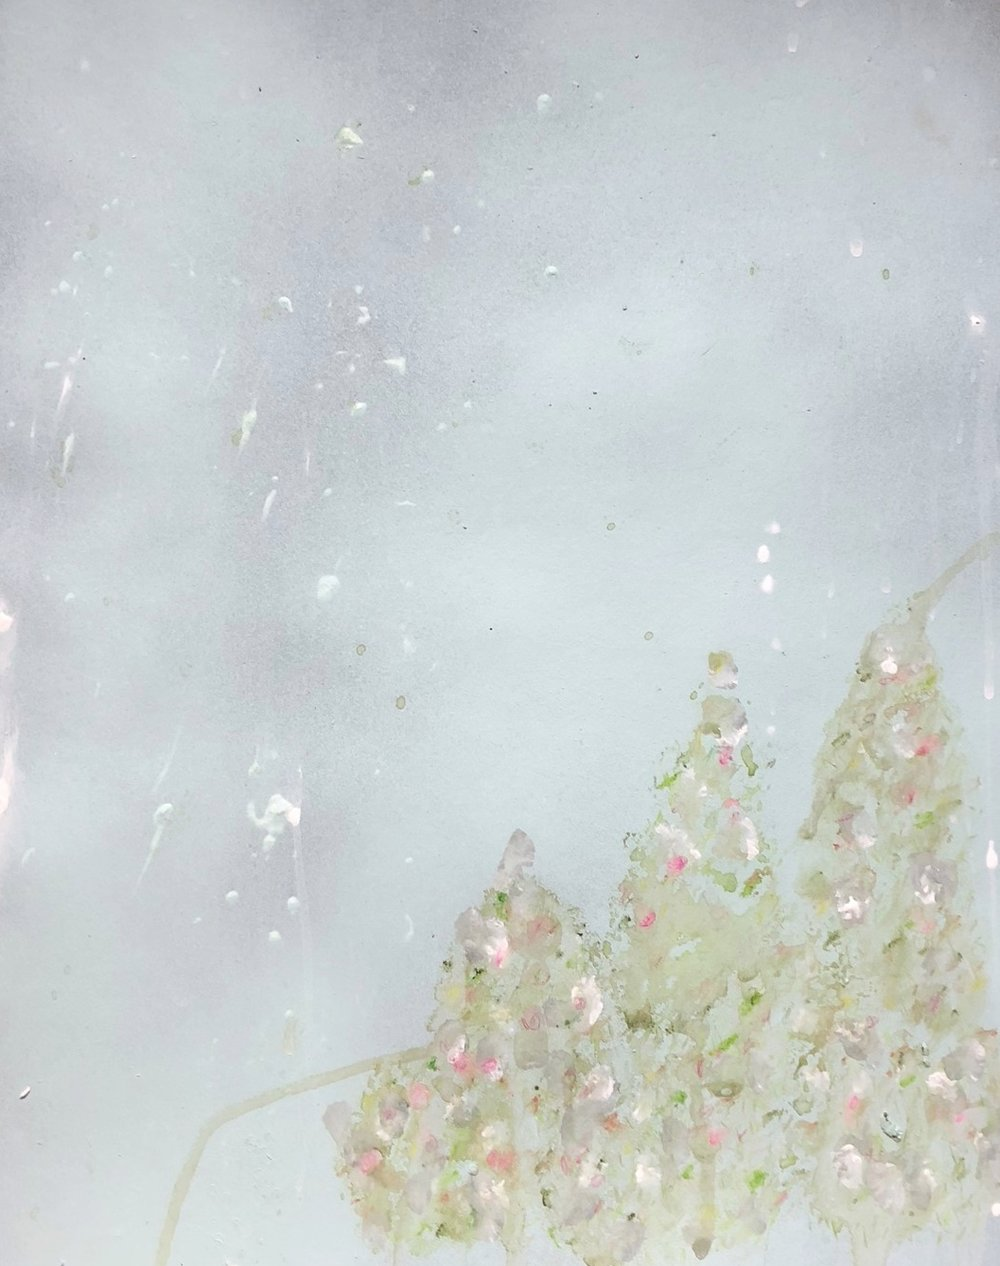 rain on a spring afternoon by michhayo